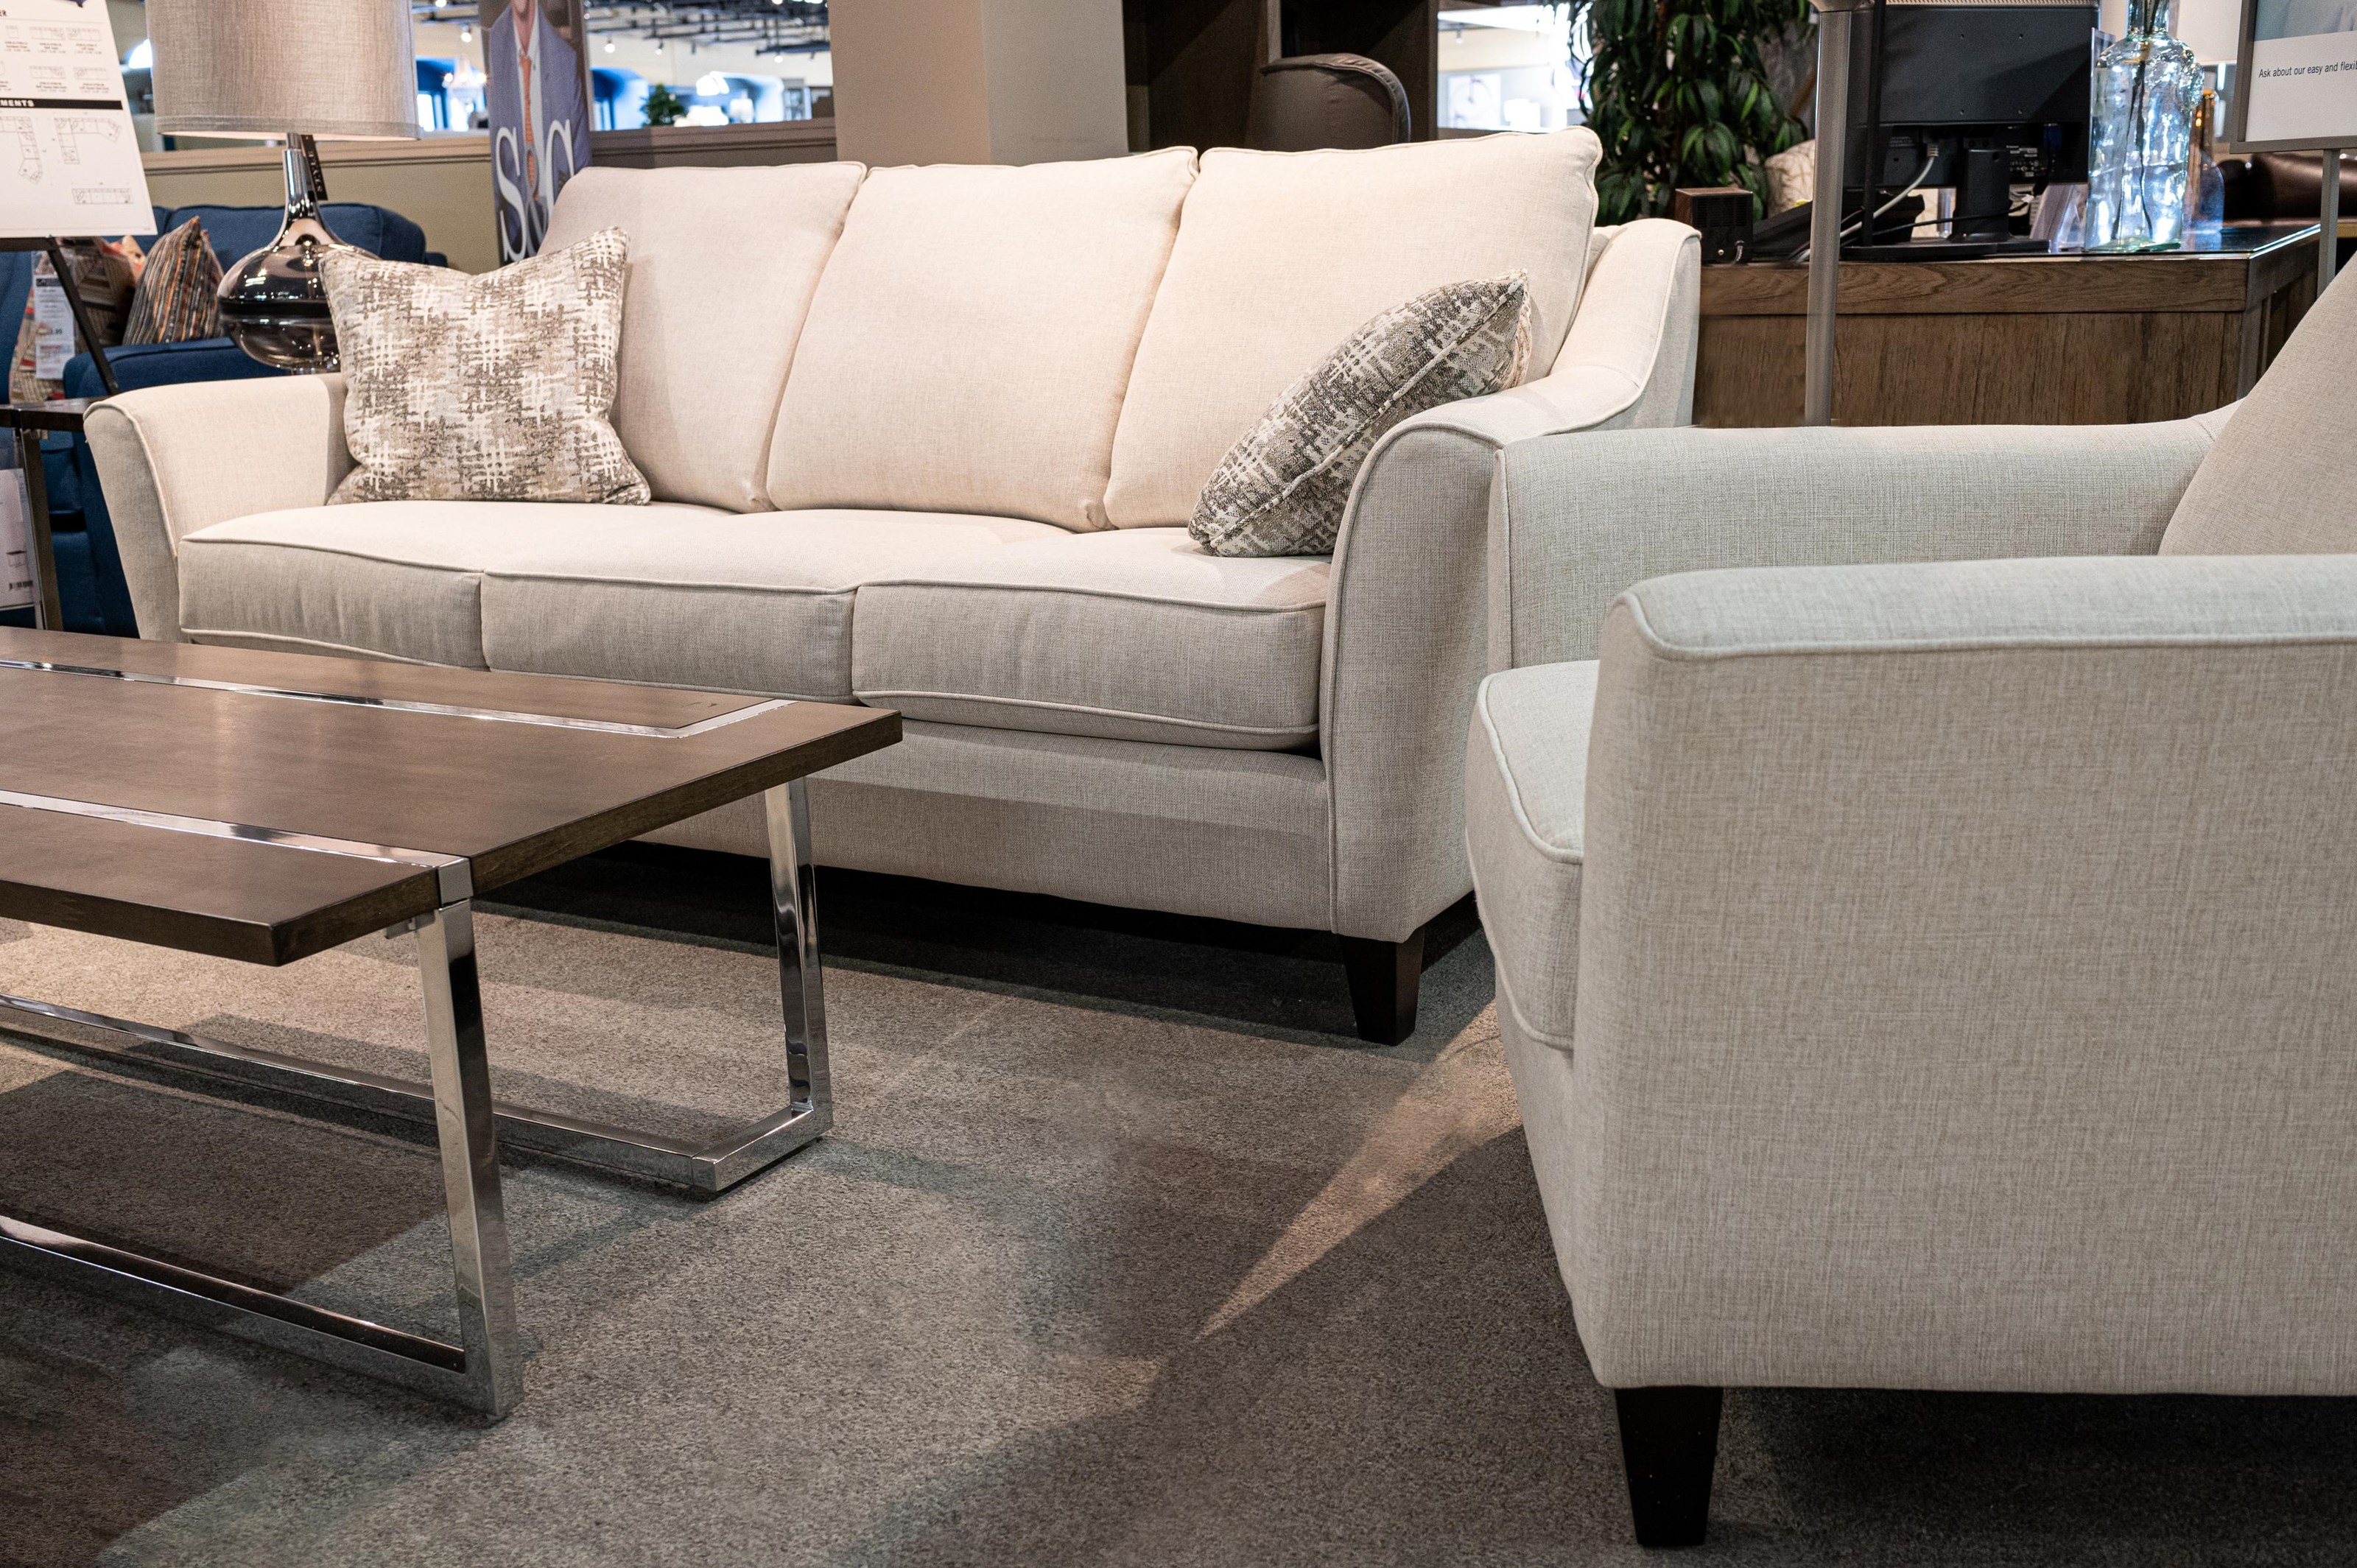 2342 Series Sofa by Decor-Rest at Stoney Creek Furniture